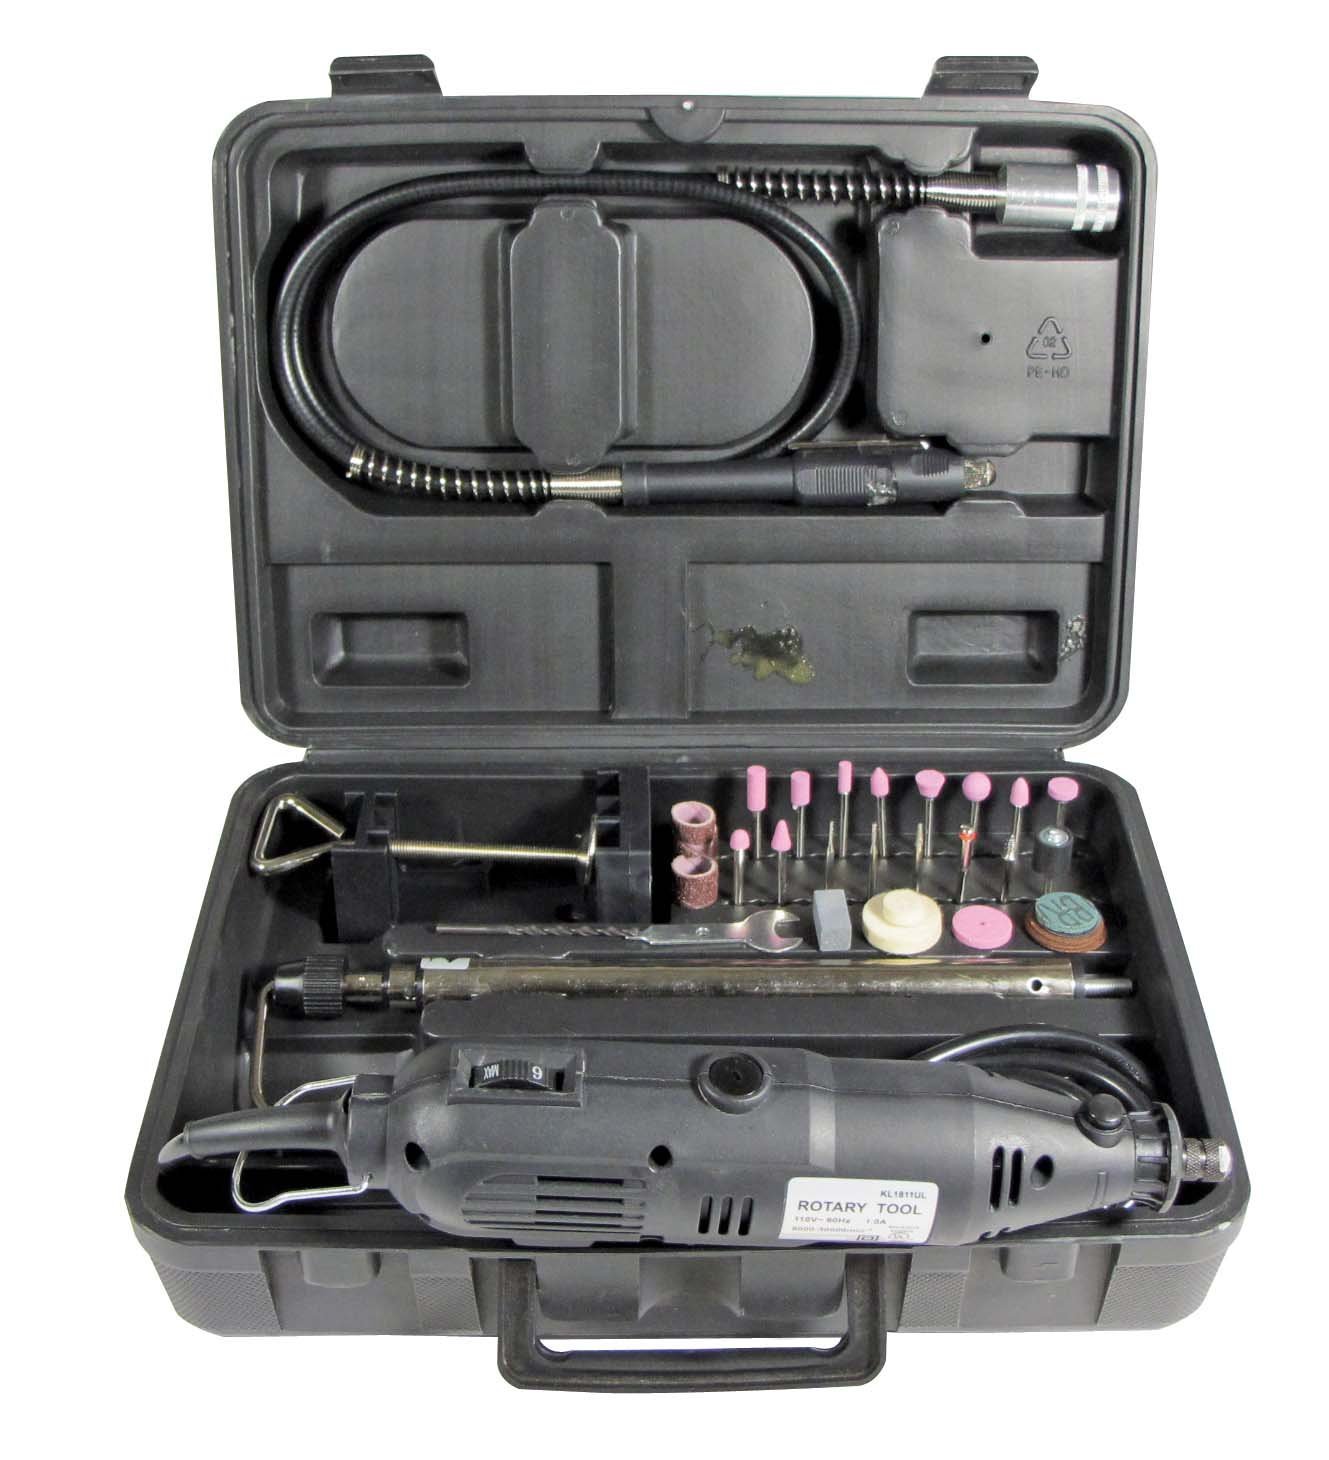 Rotary Tool Set with Flexible Shaft and Stand - Adjustable Speed